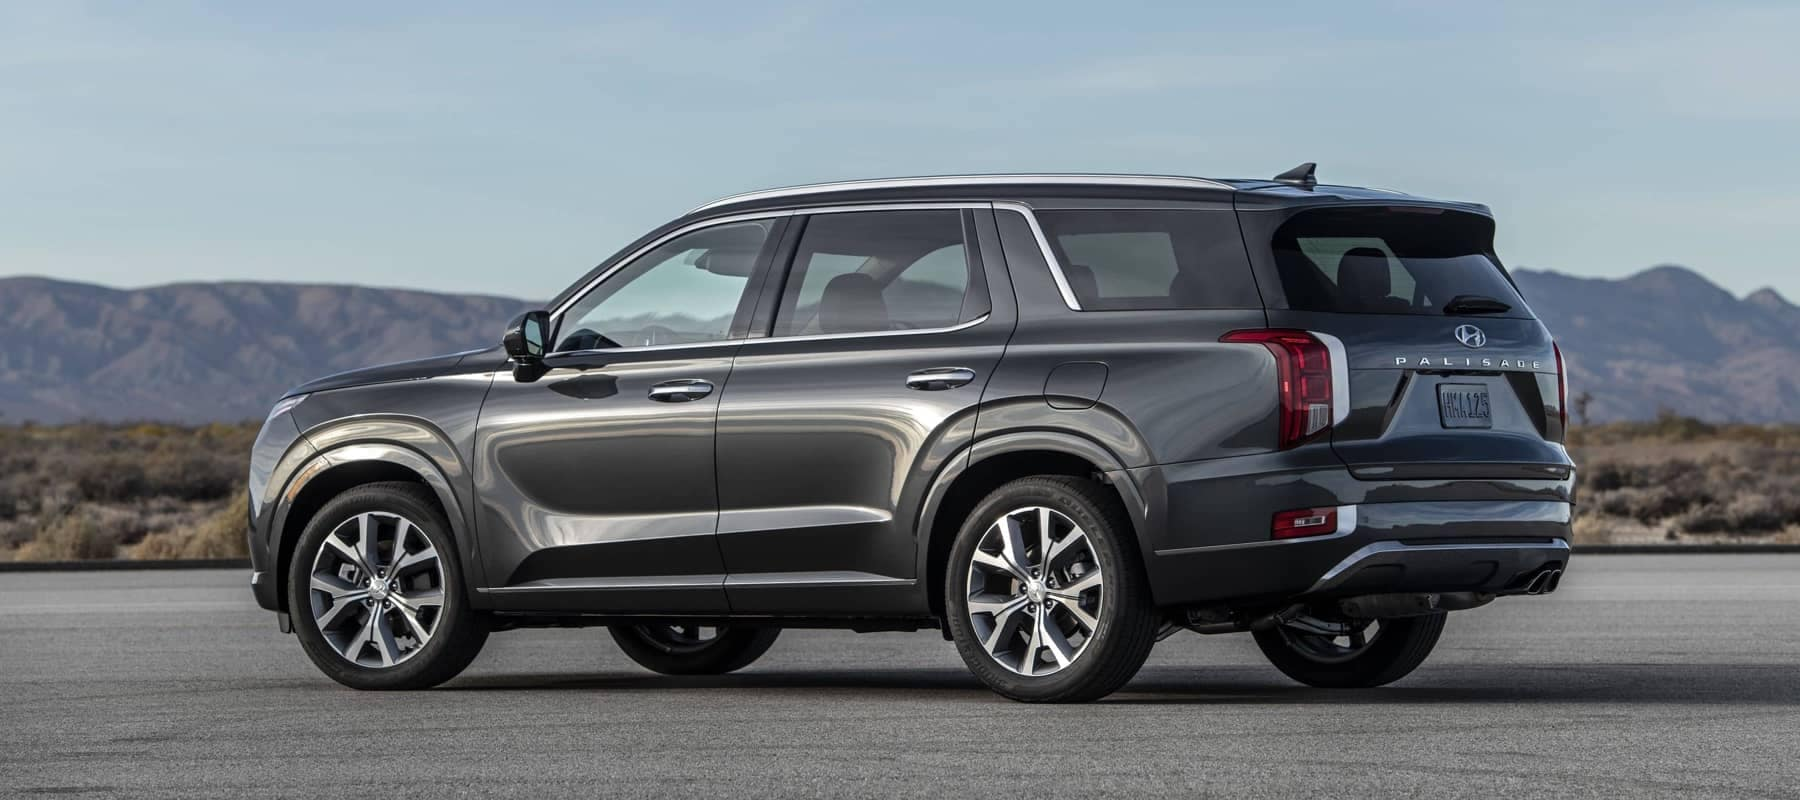 2020-hyundai-palisade-parked-with-a-mountain-in-the-background-1800x800